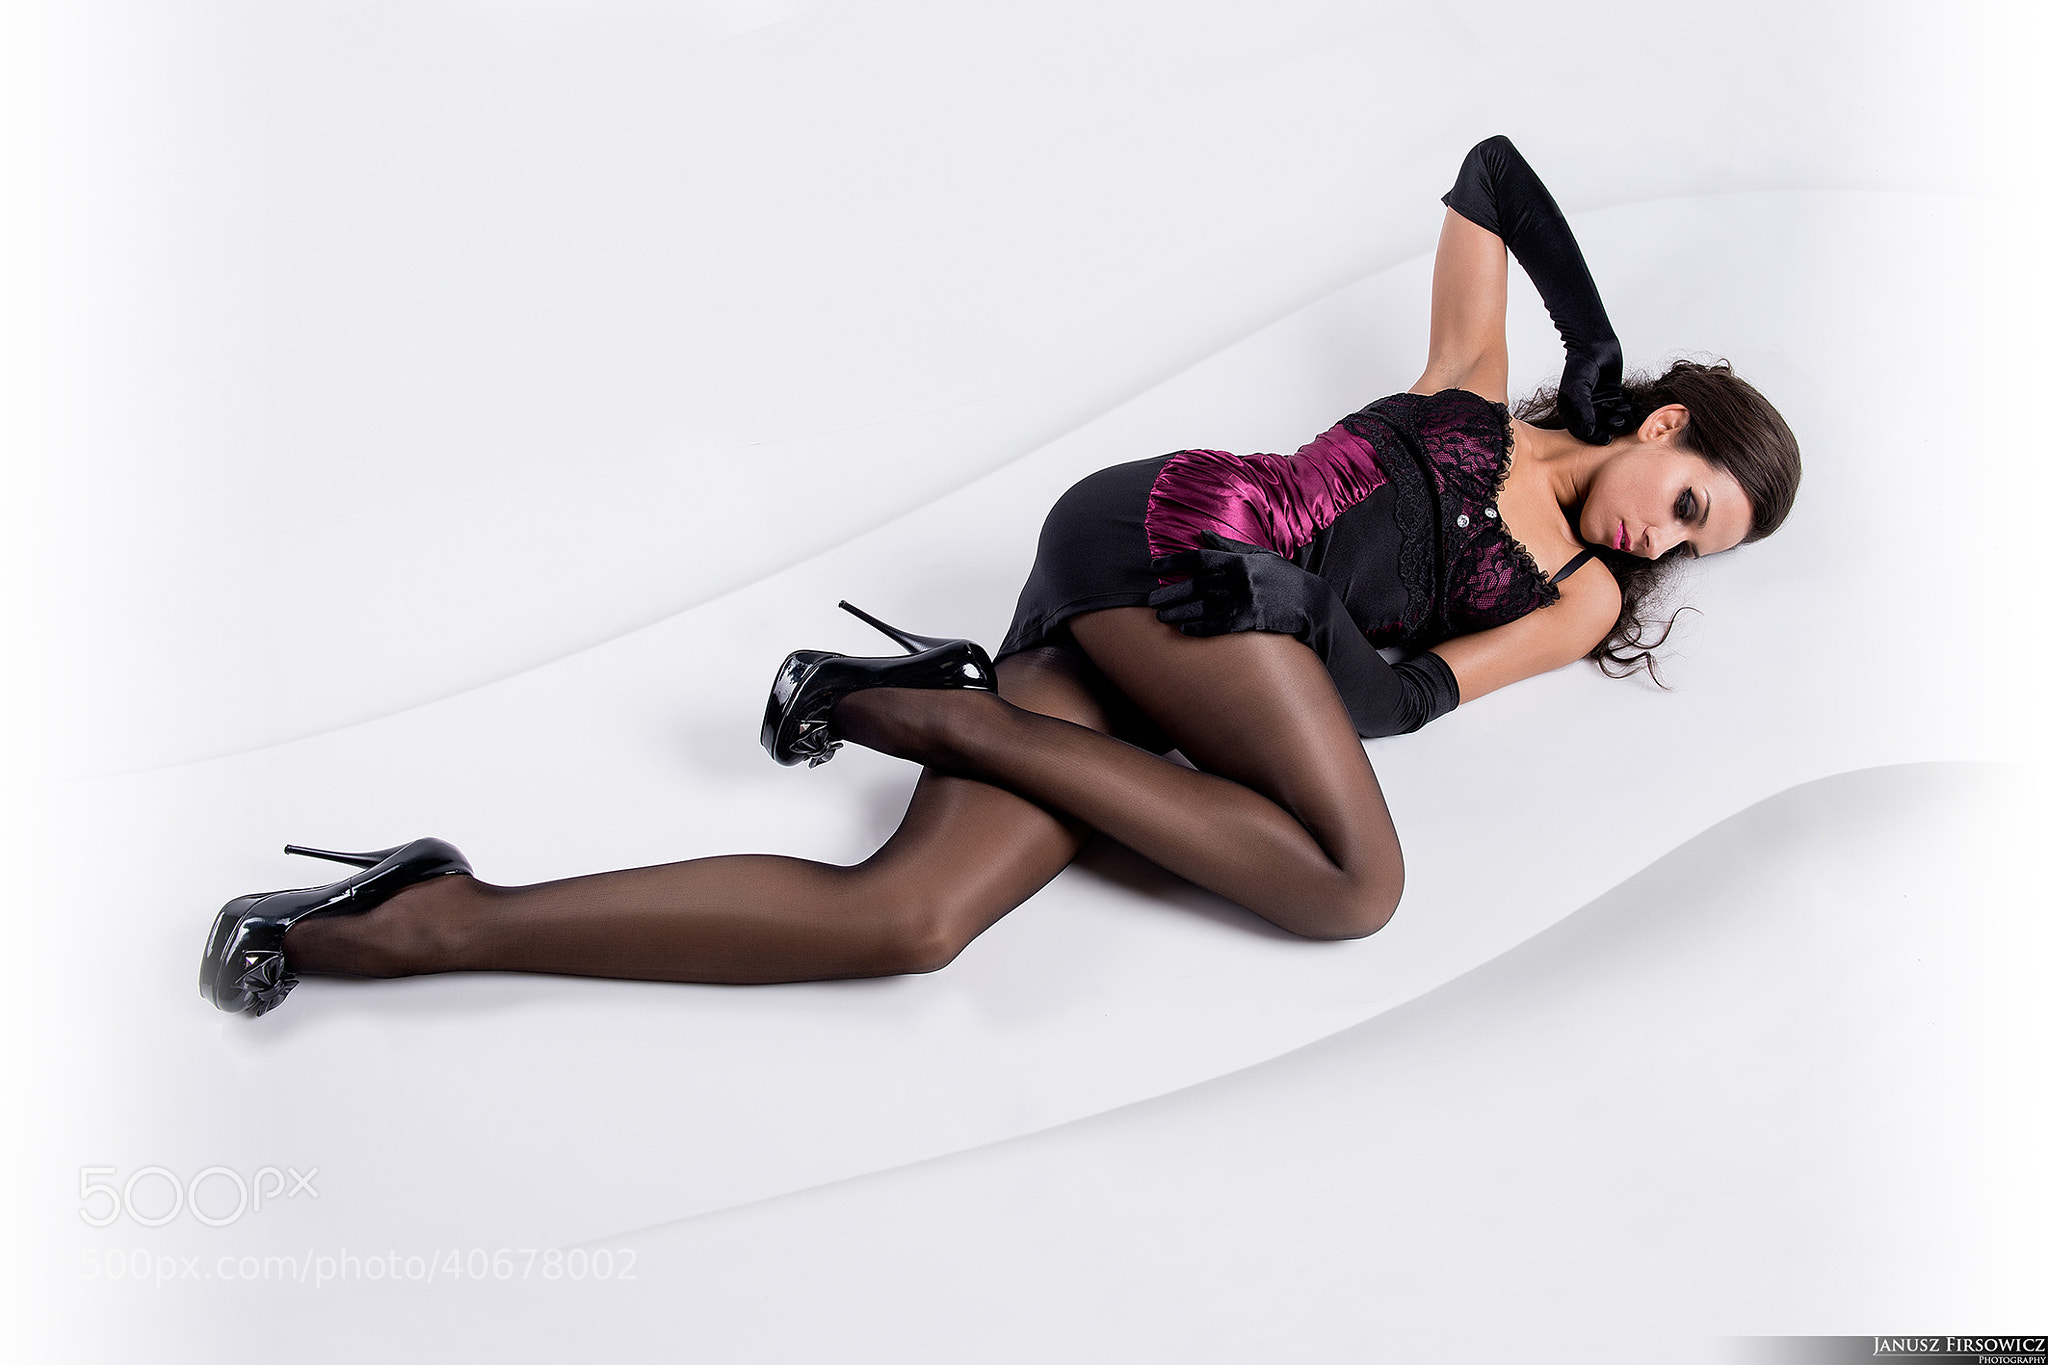 Photograph Lady in nylons 4 by Janusz Firsowicz on 500px